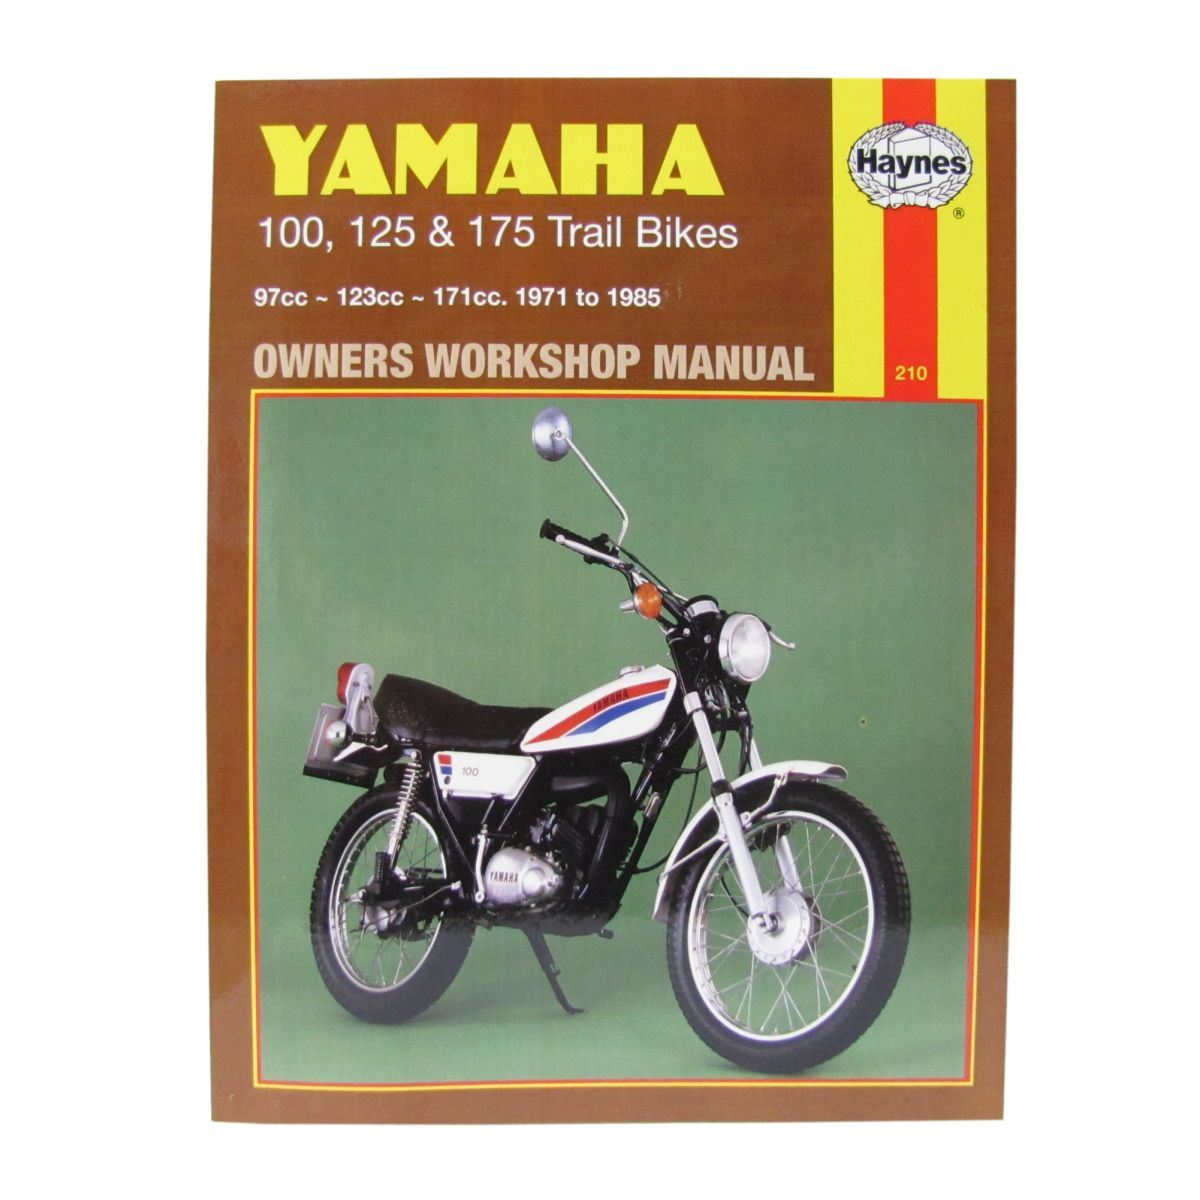 details about workshop manual yamaha dt100 76 83, dt125, mx 73 82, dt175, mx 73 85  1980 yamaha dt 100 wiring #14